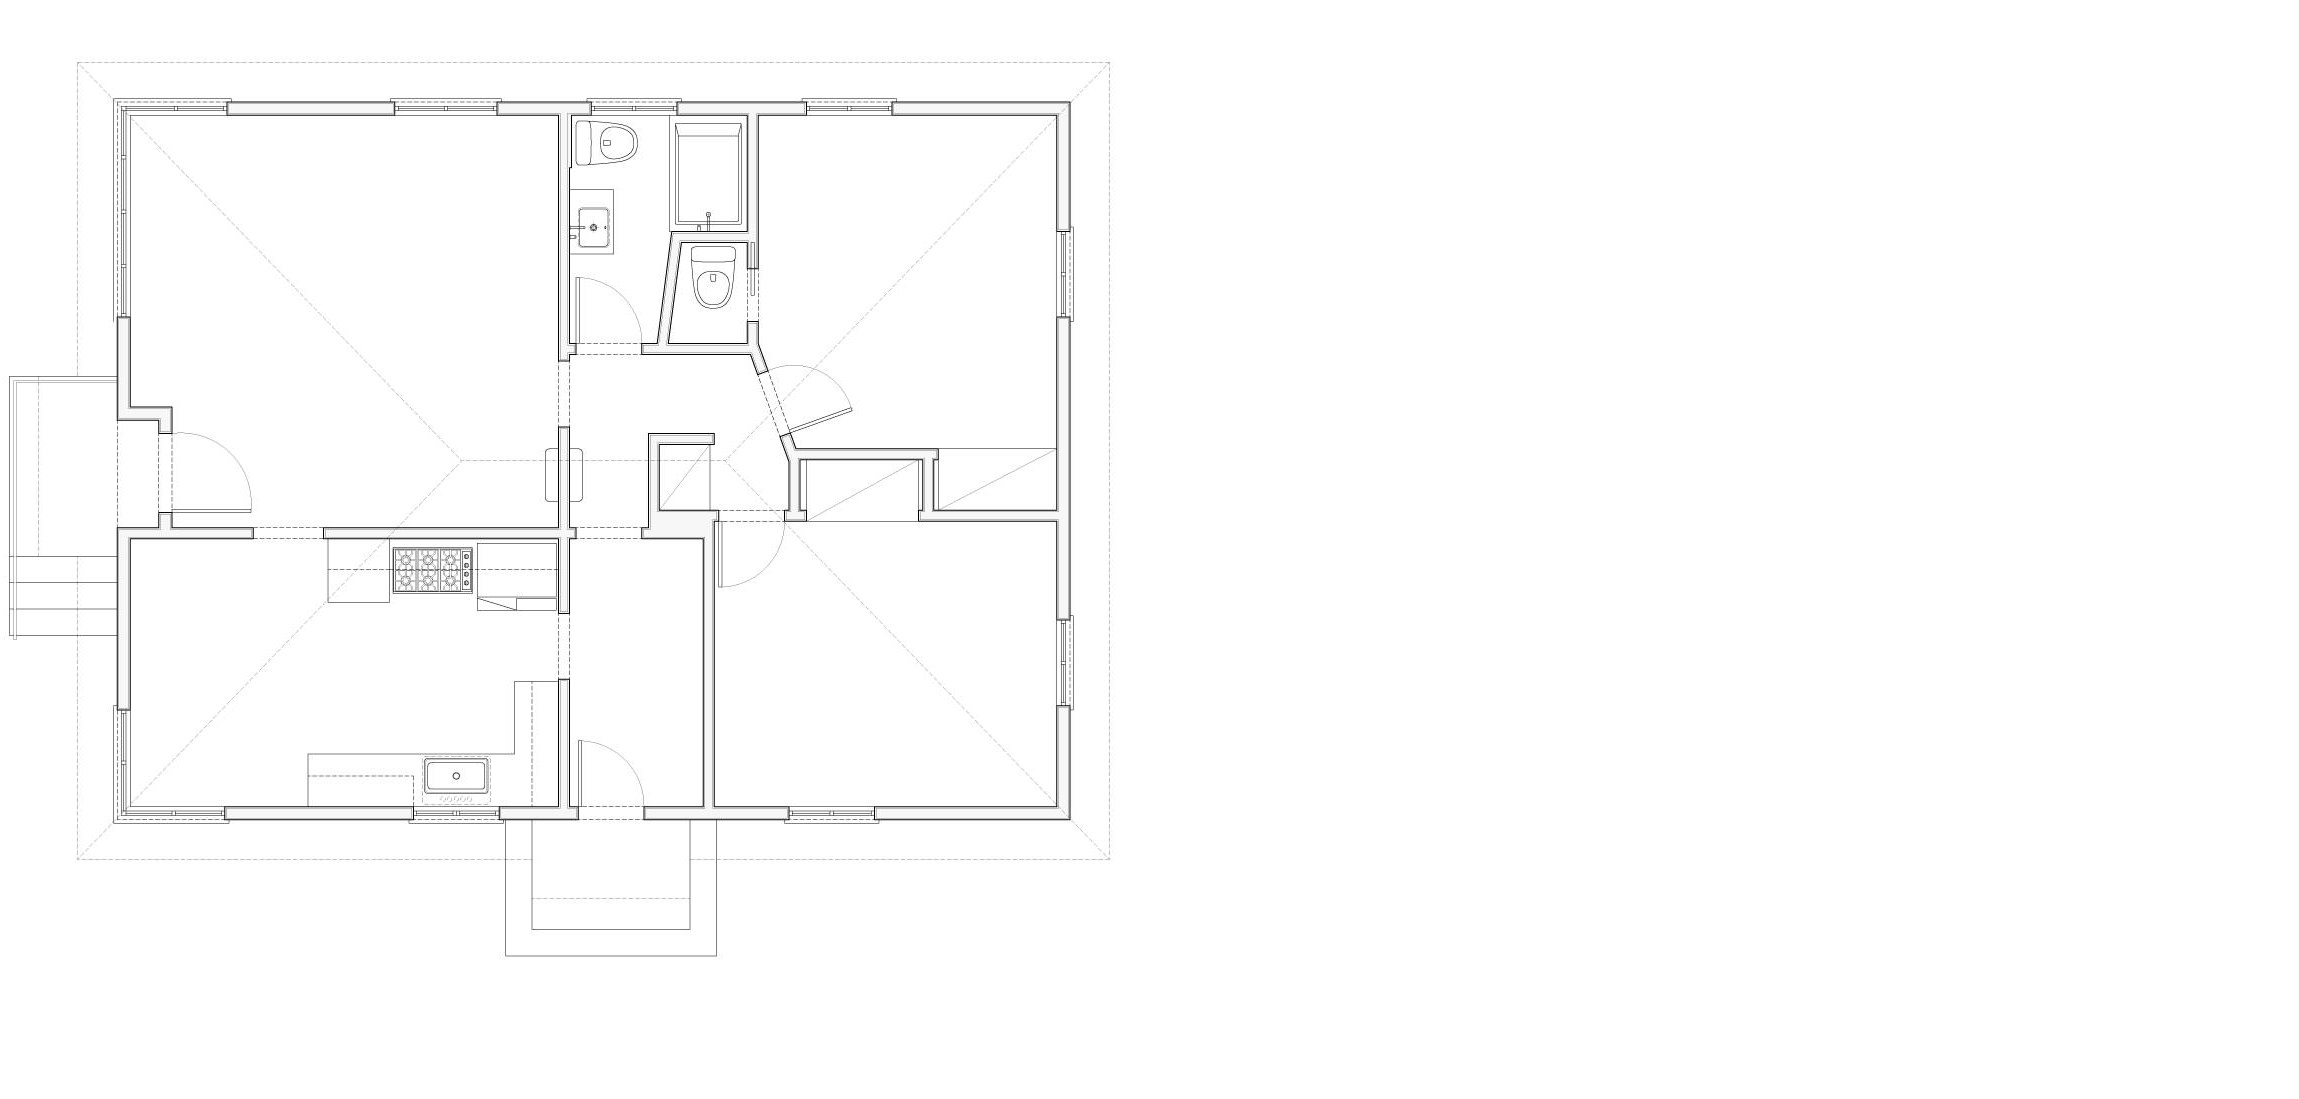 Plan of the existing 1940's bungalow.